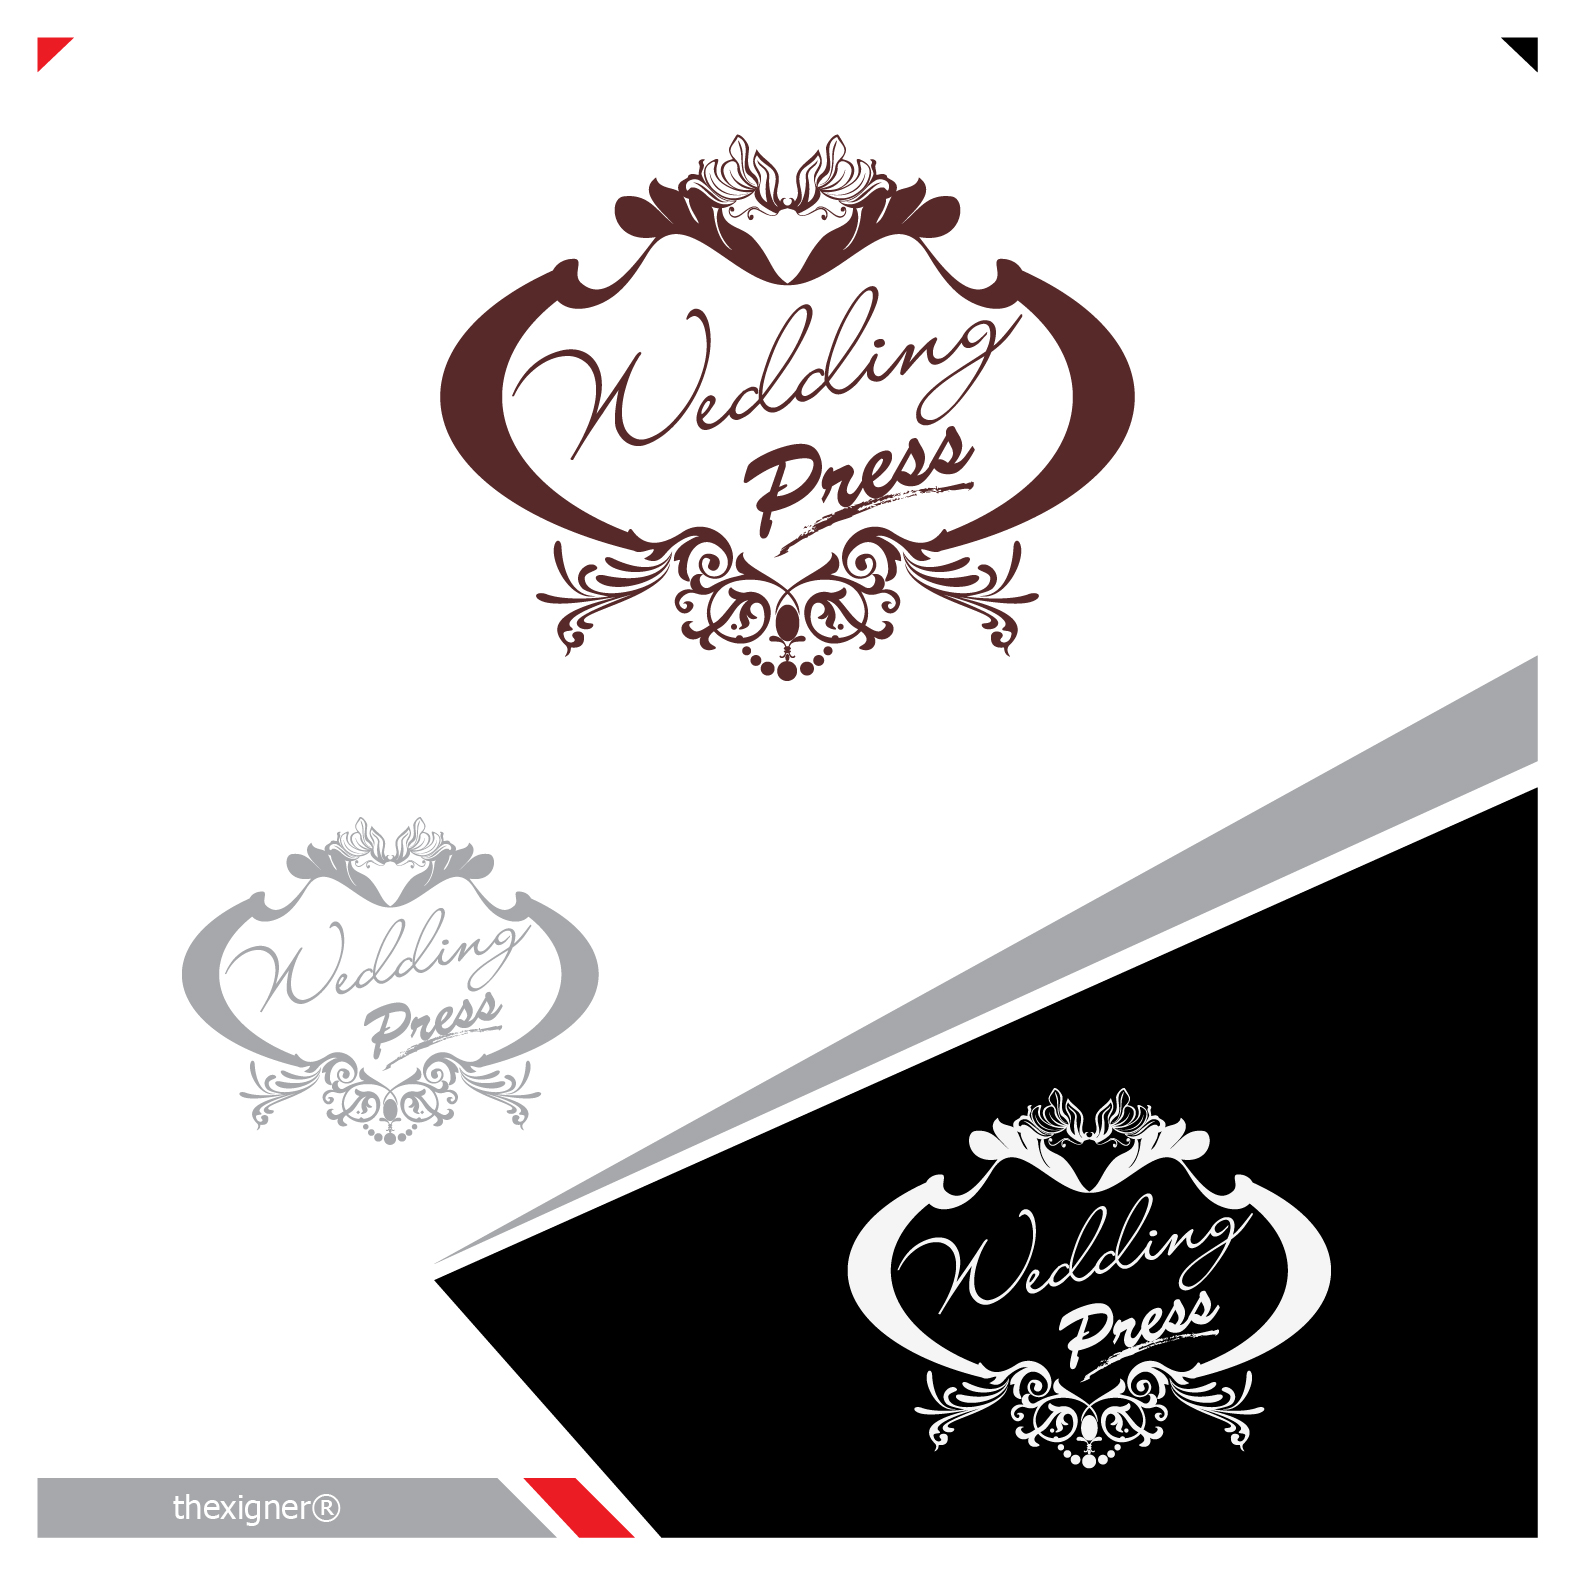 Free Wedding Monogram Maker  DesignMantic The Design Shop